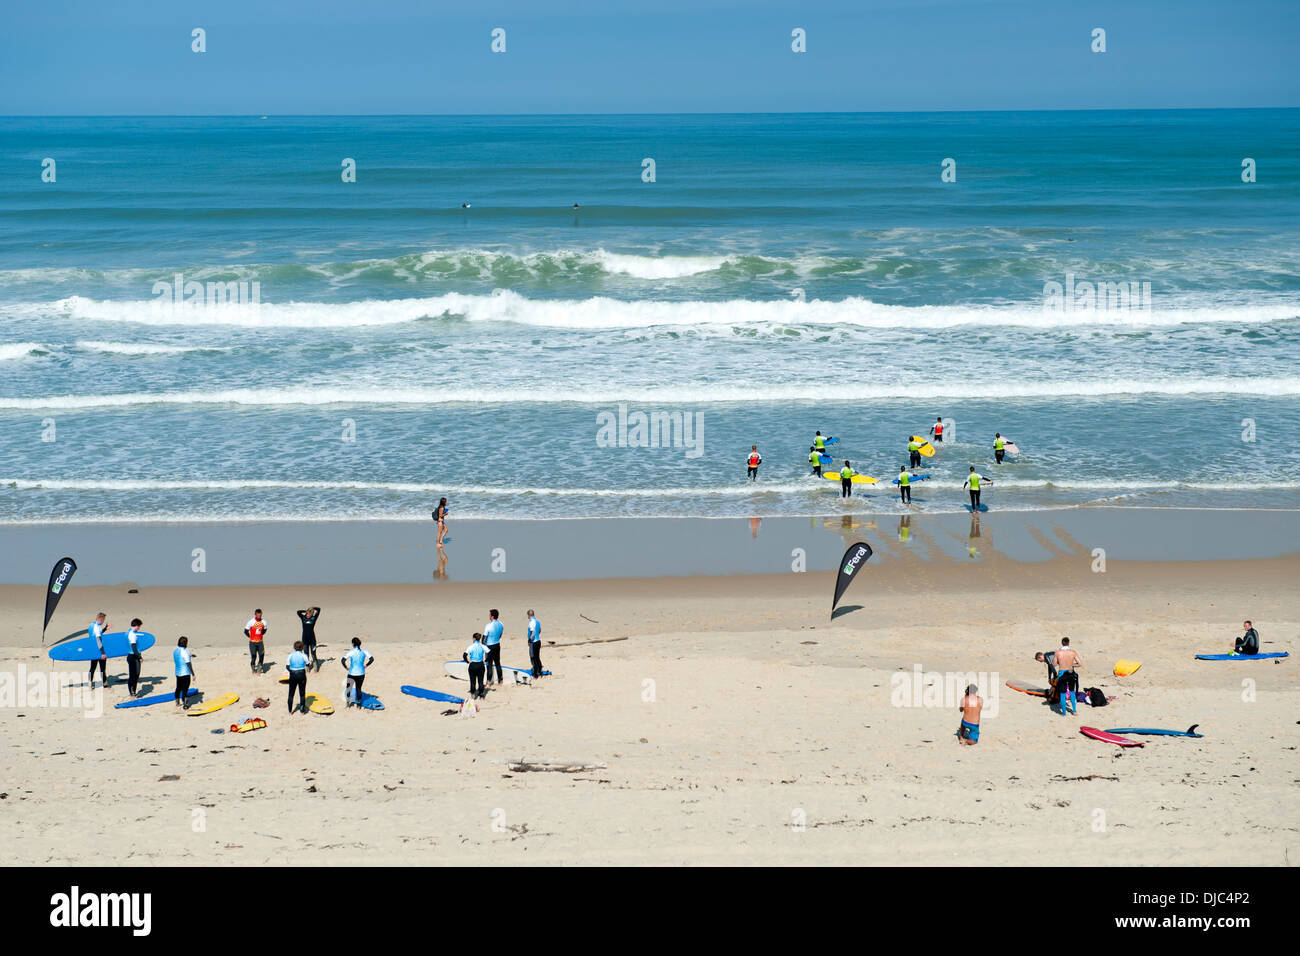 Surfers taking lessons on Le Pin Sec beach in the Gironde department of the Aquitaine region of southwestern France. - Stock Image